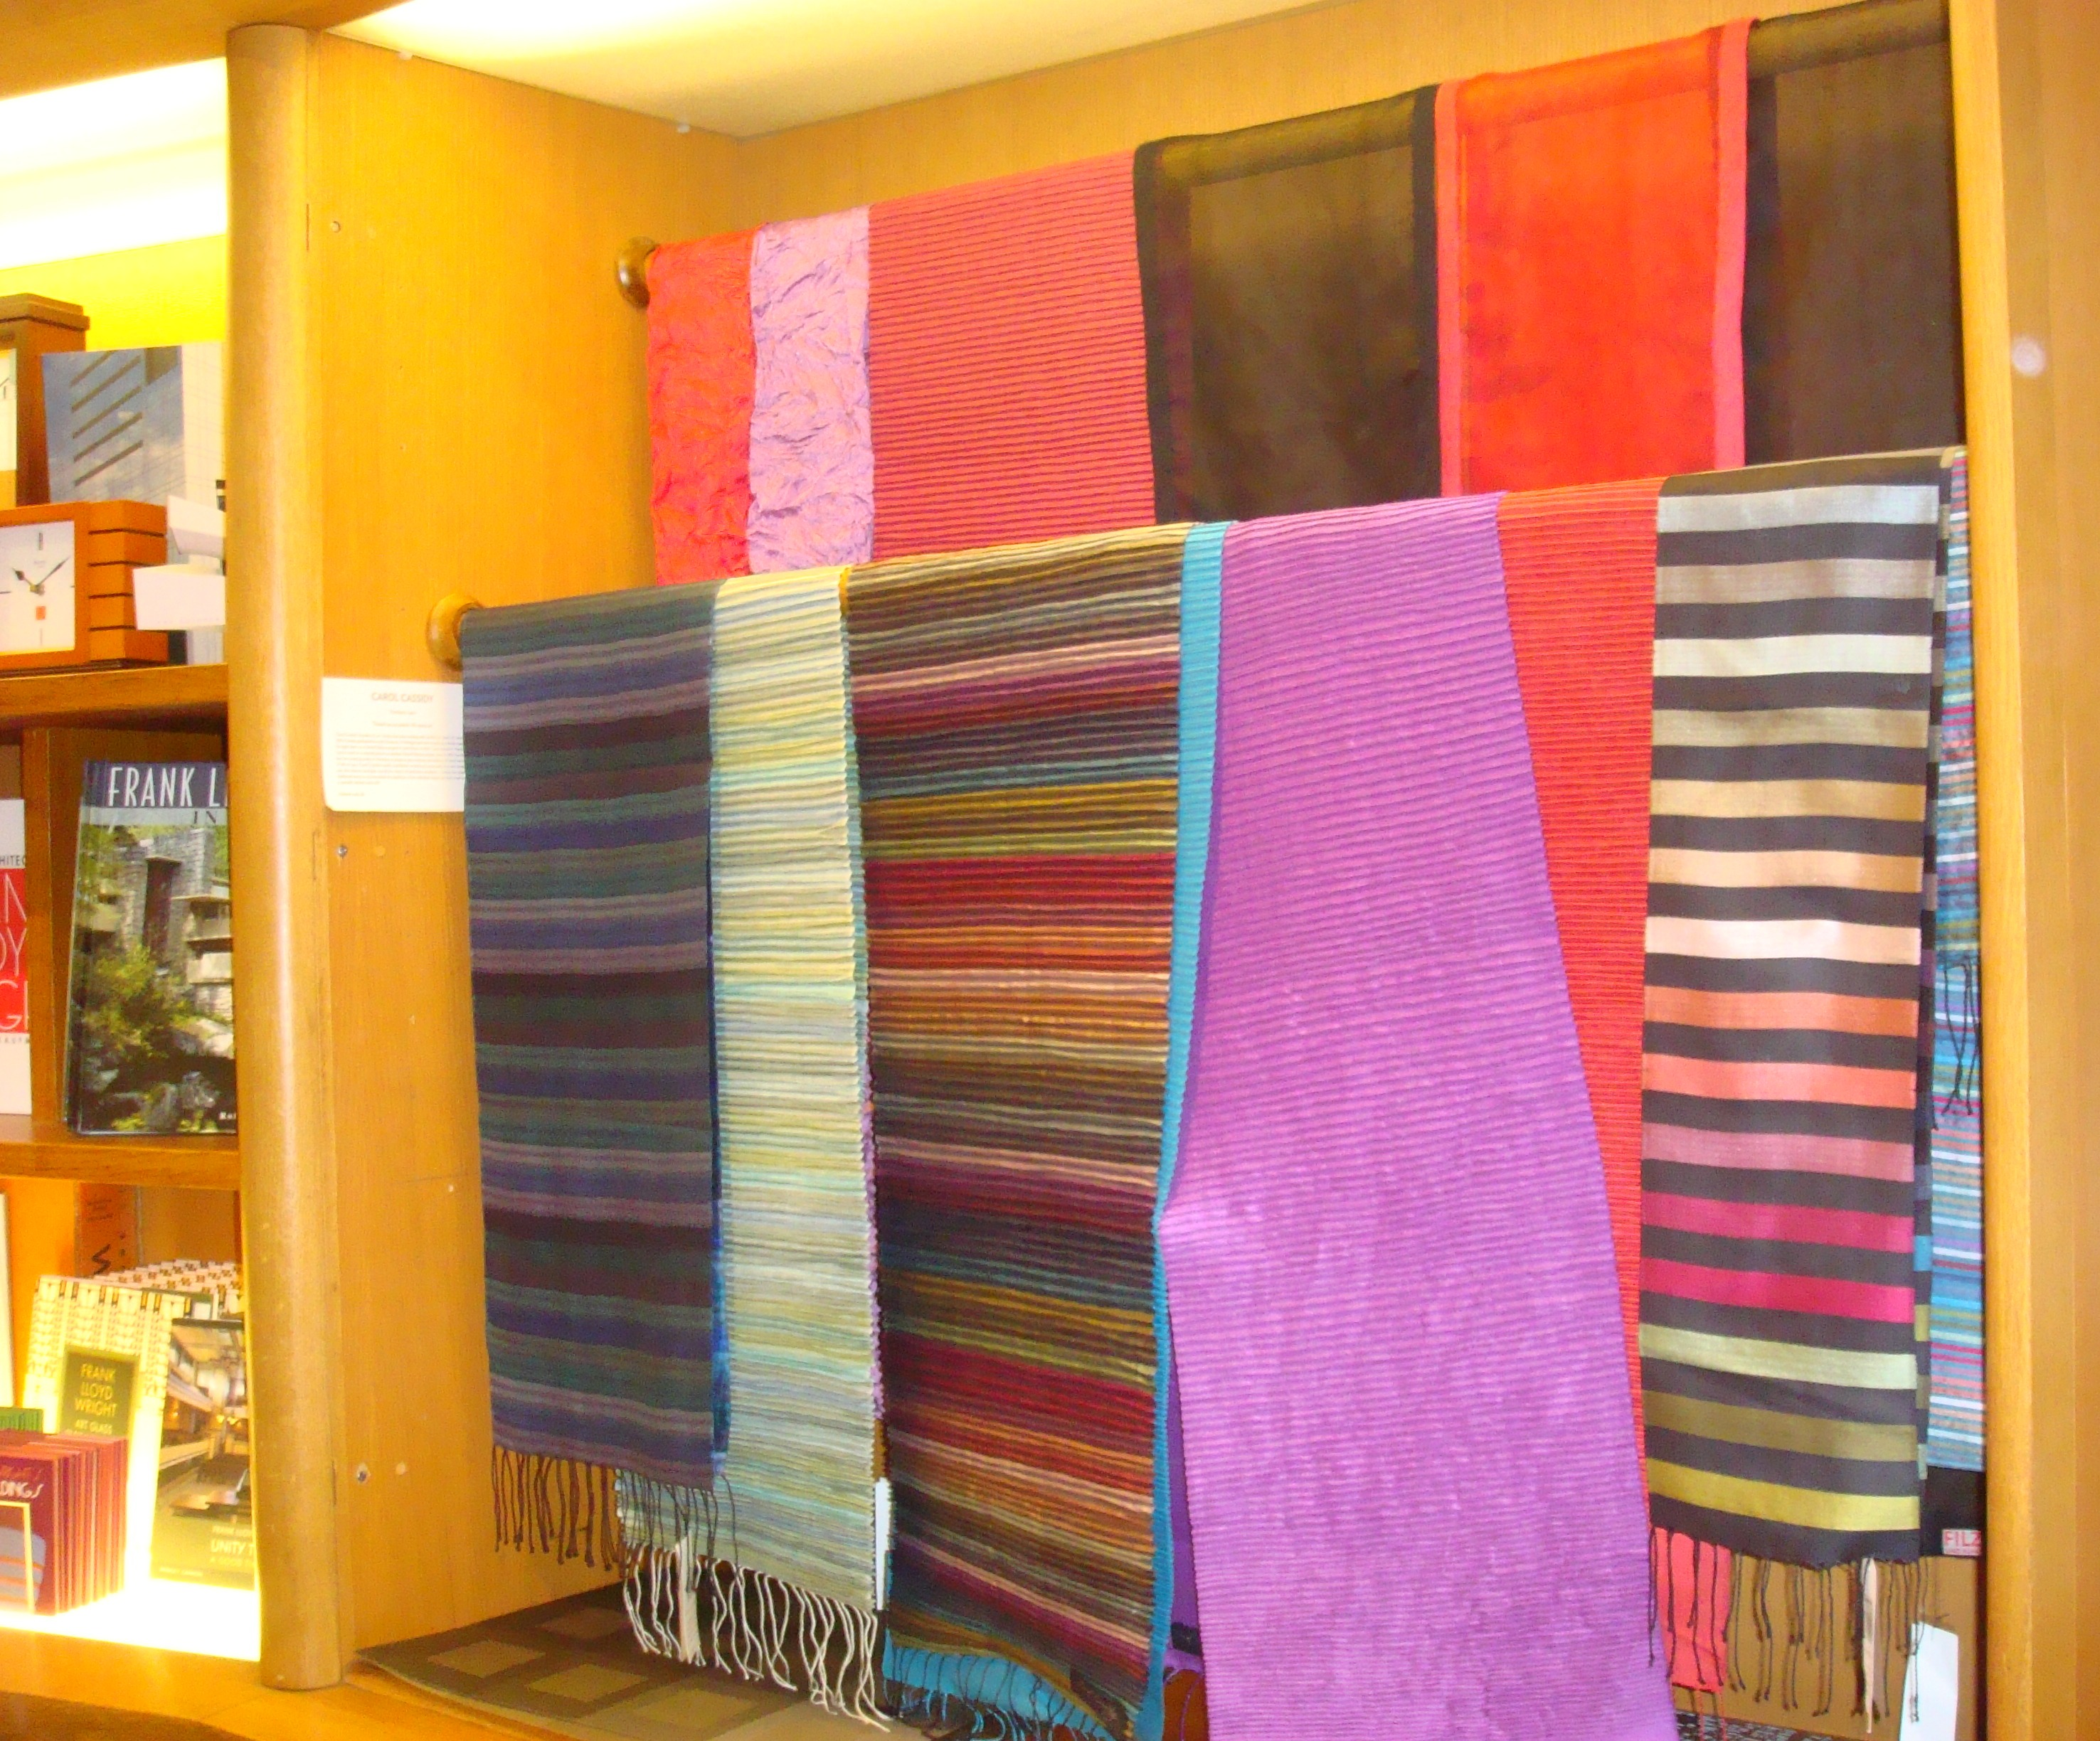 Cambodian silk scarves by Carol Cassidy at Guggenheim Museum (NYC, March 2010)